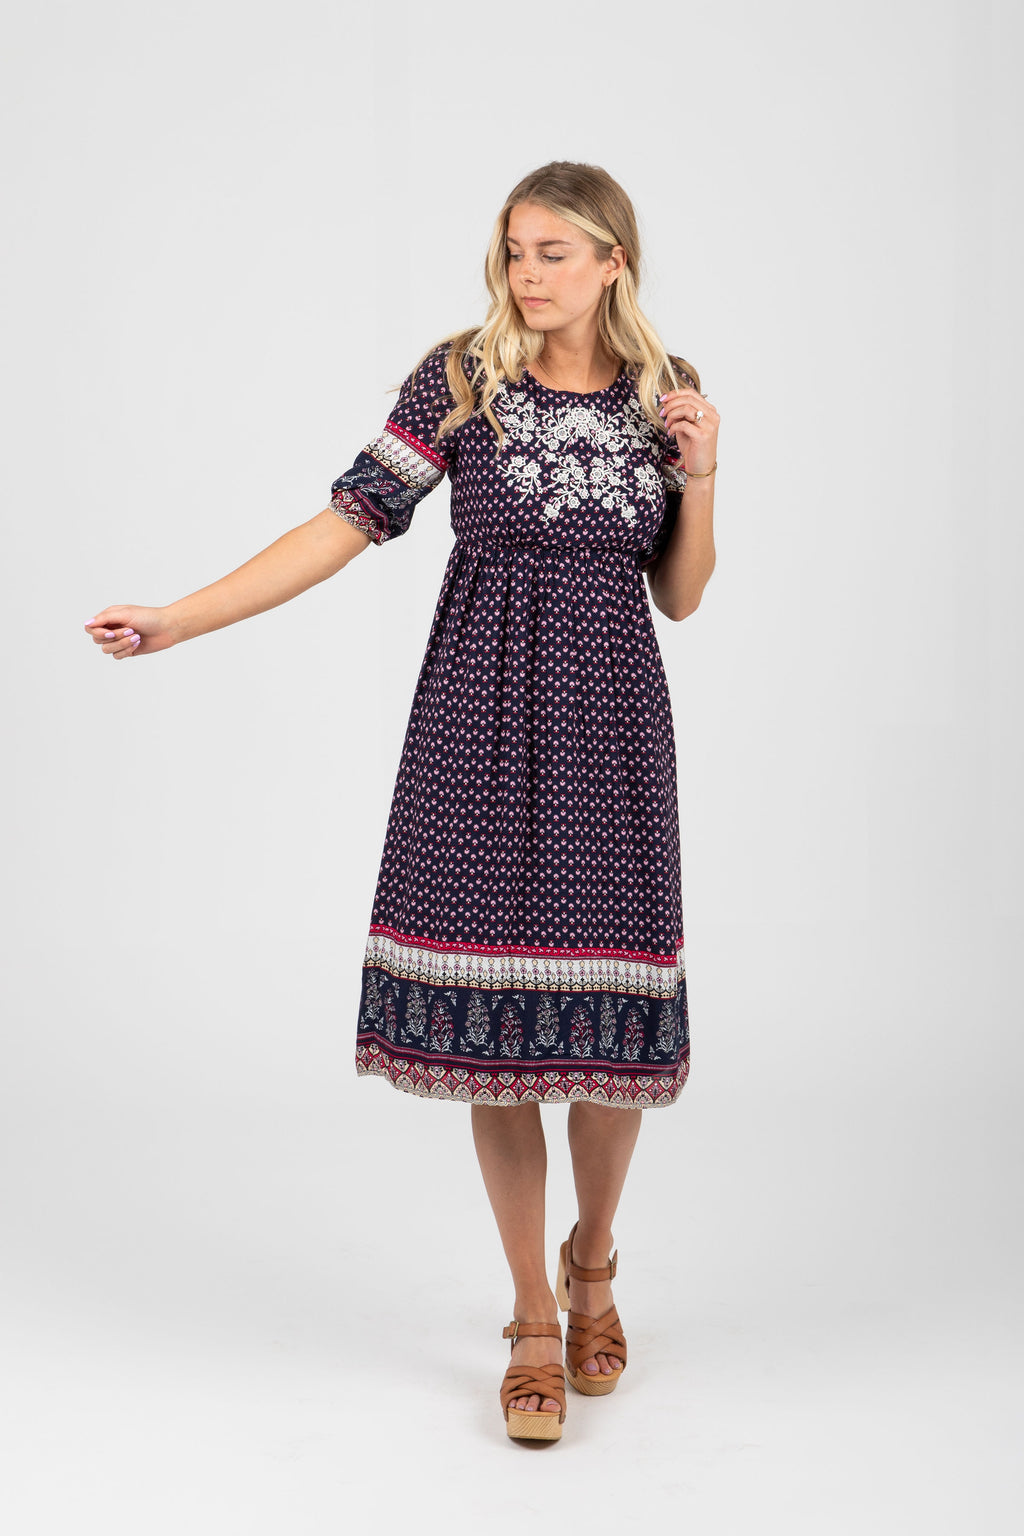 Piper & Scoot: The Kamrie Embroidered Detail Dress in Navy